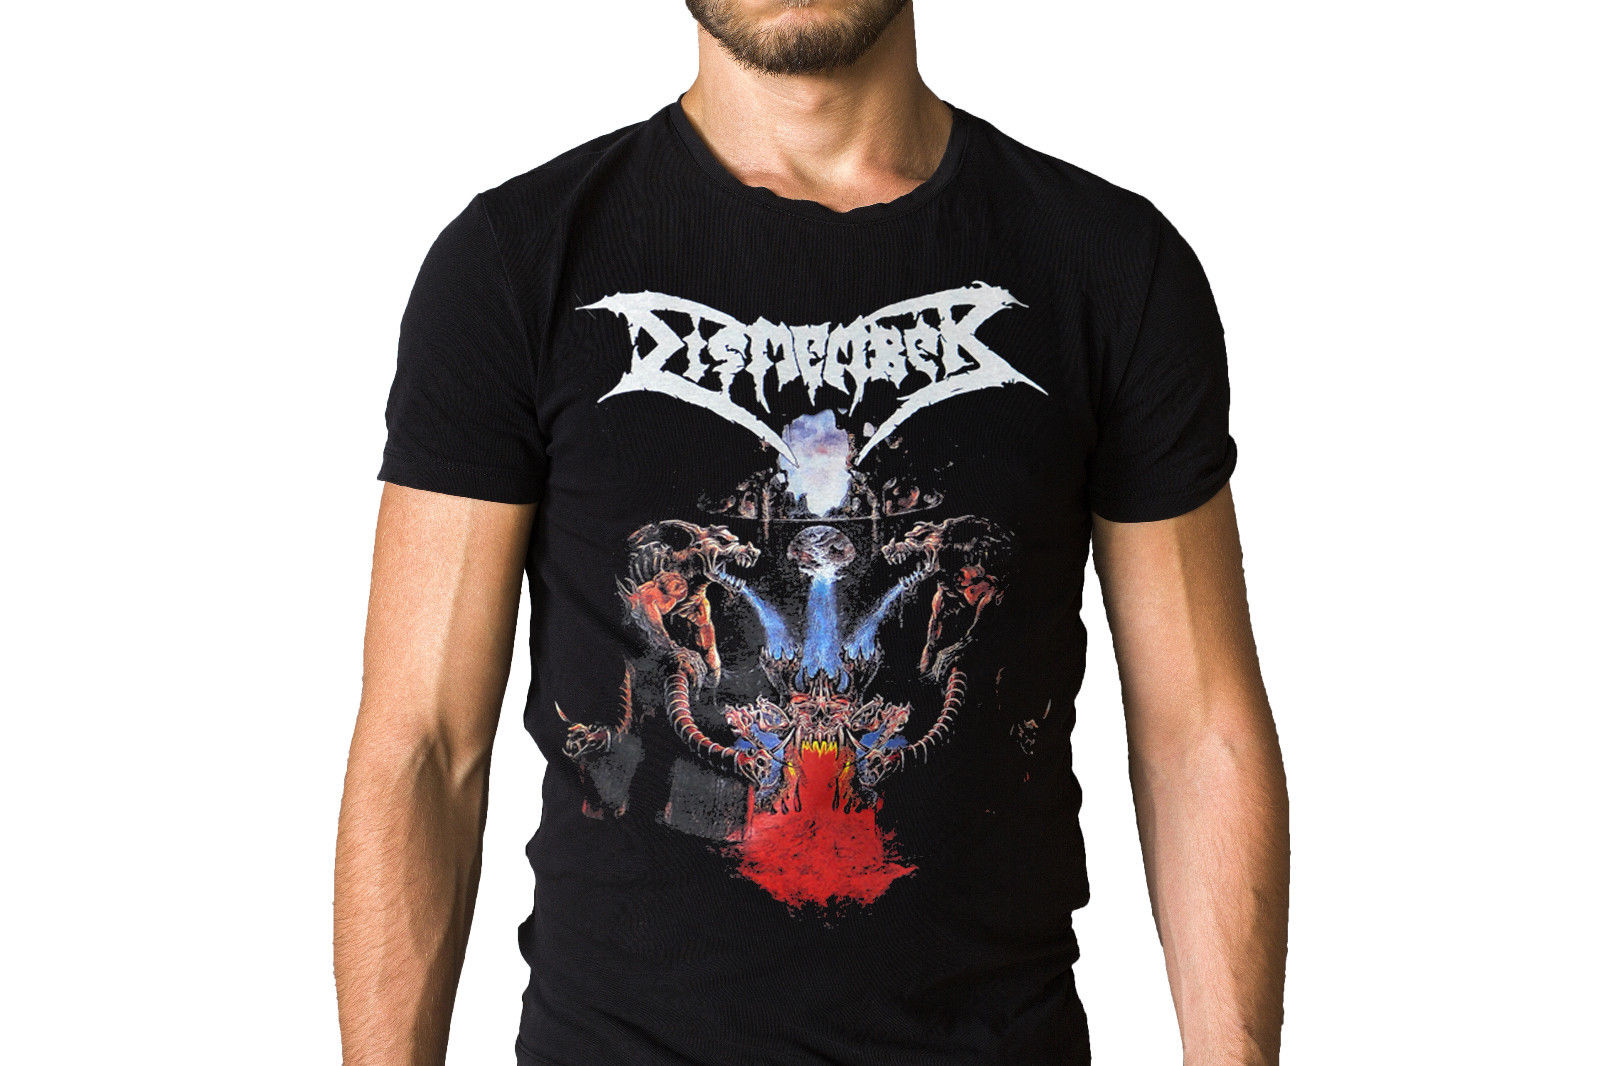 Dismember Like An Ever Flowing Stream 1991 Album Cover T-Shirt Male Pre-Cotton Clothing 100% Cotton Sleeve T Shirt Homme image